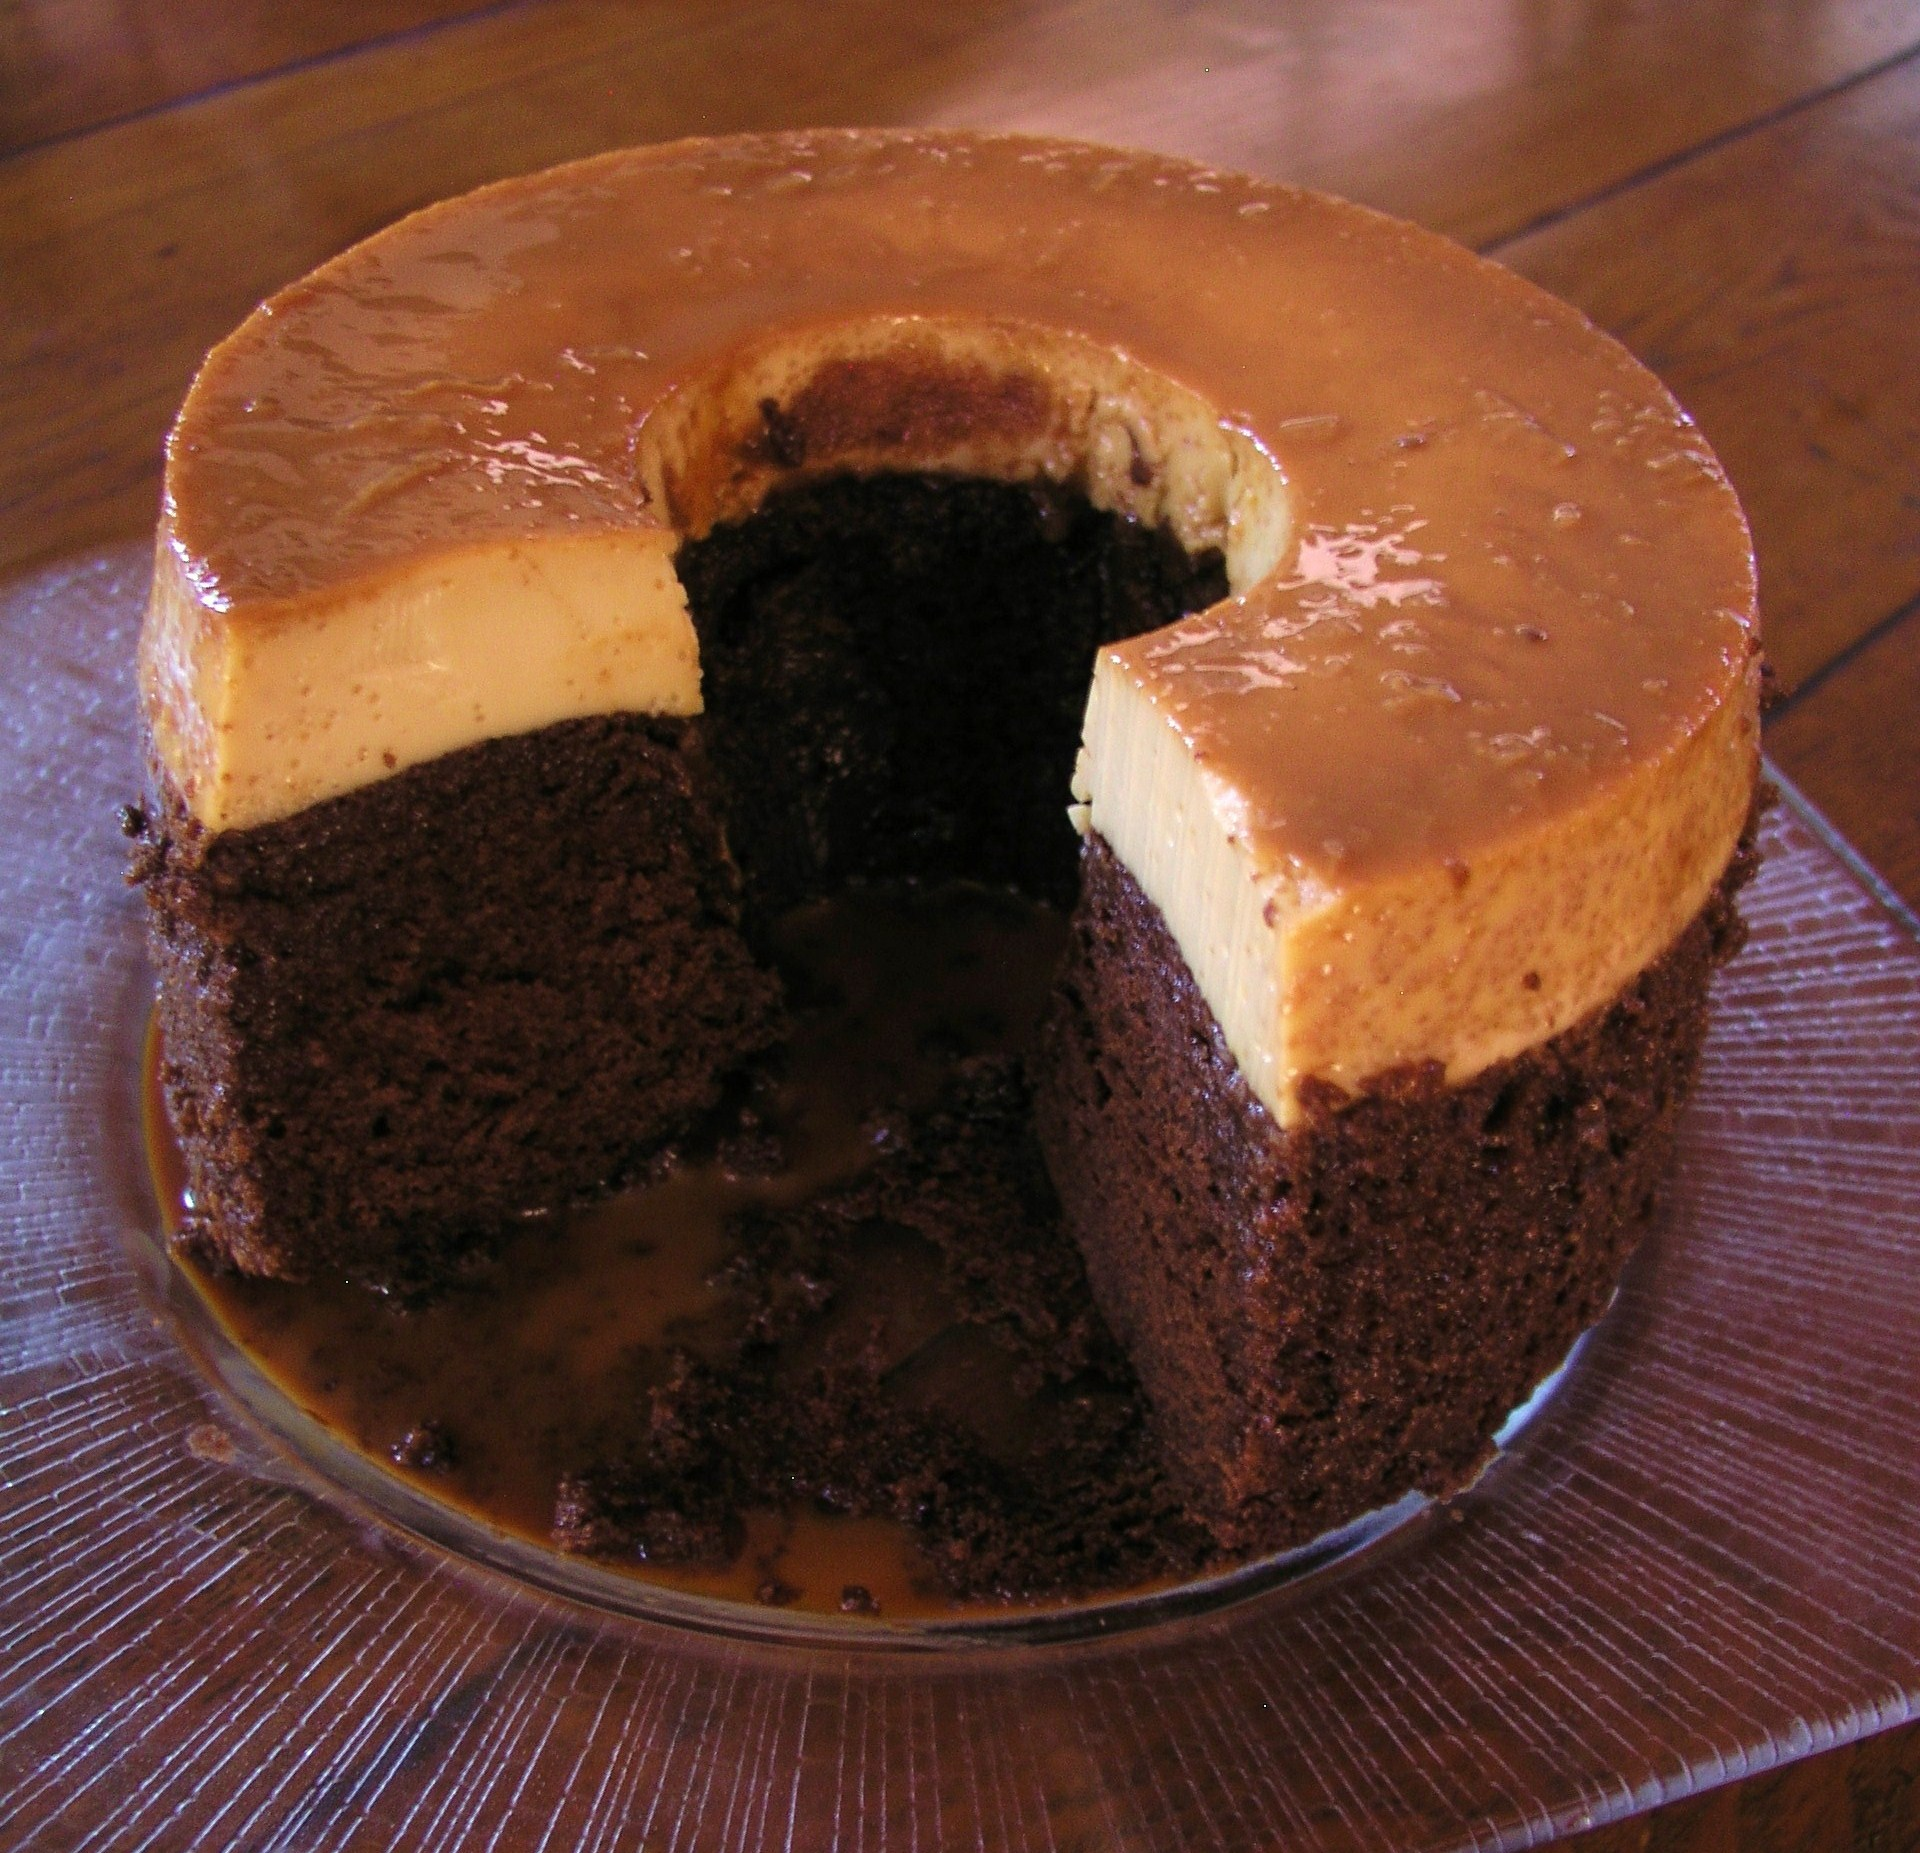 Mexican chocoflan, the impossible chocolate cake